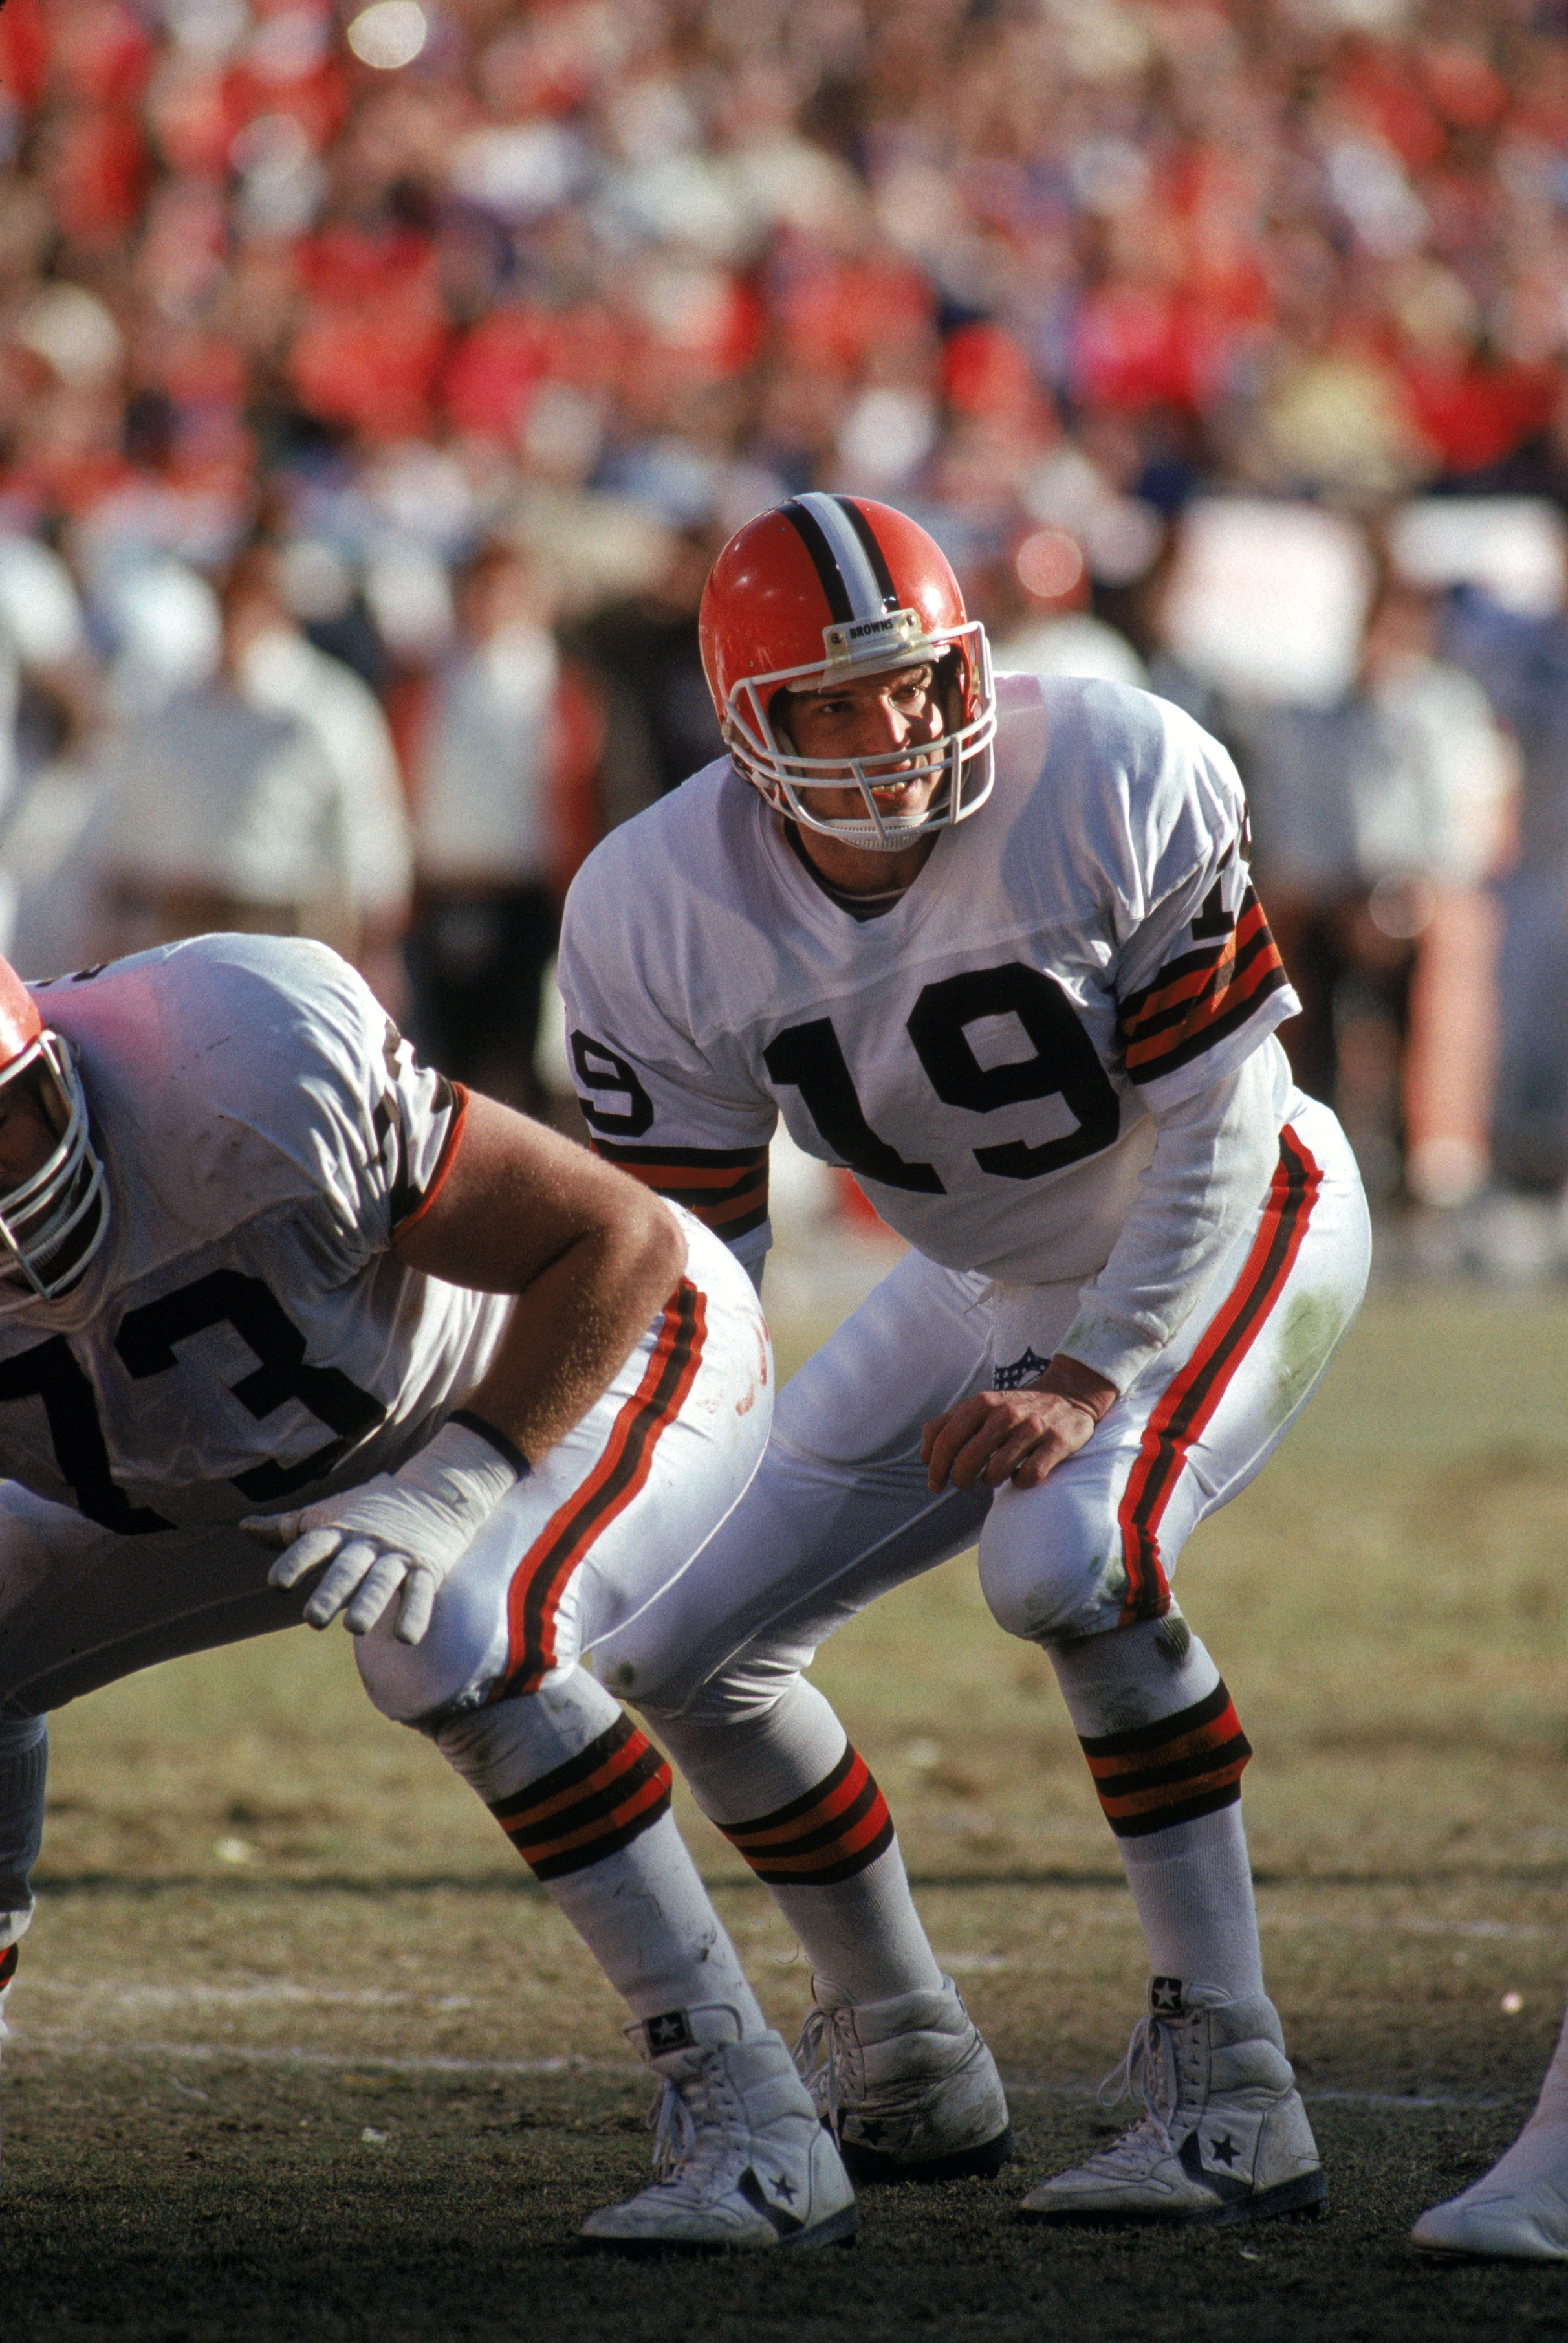 DENVER - JANUARY 17:  Quarterback Bernie Kosar #19 of the Cleveland Browns bends down for the snap during the 1987 AFC Championship game against the Denver Broncos at Mile High Stadium on January 17, 1988 in Denver, Colorado.  The Broncos won 38-33.  (Pho